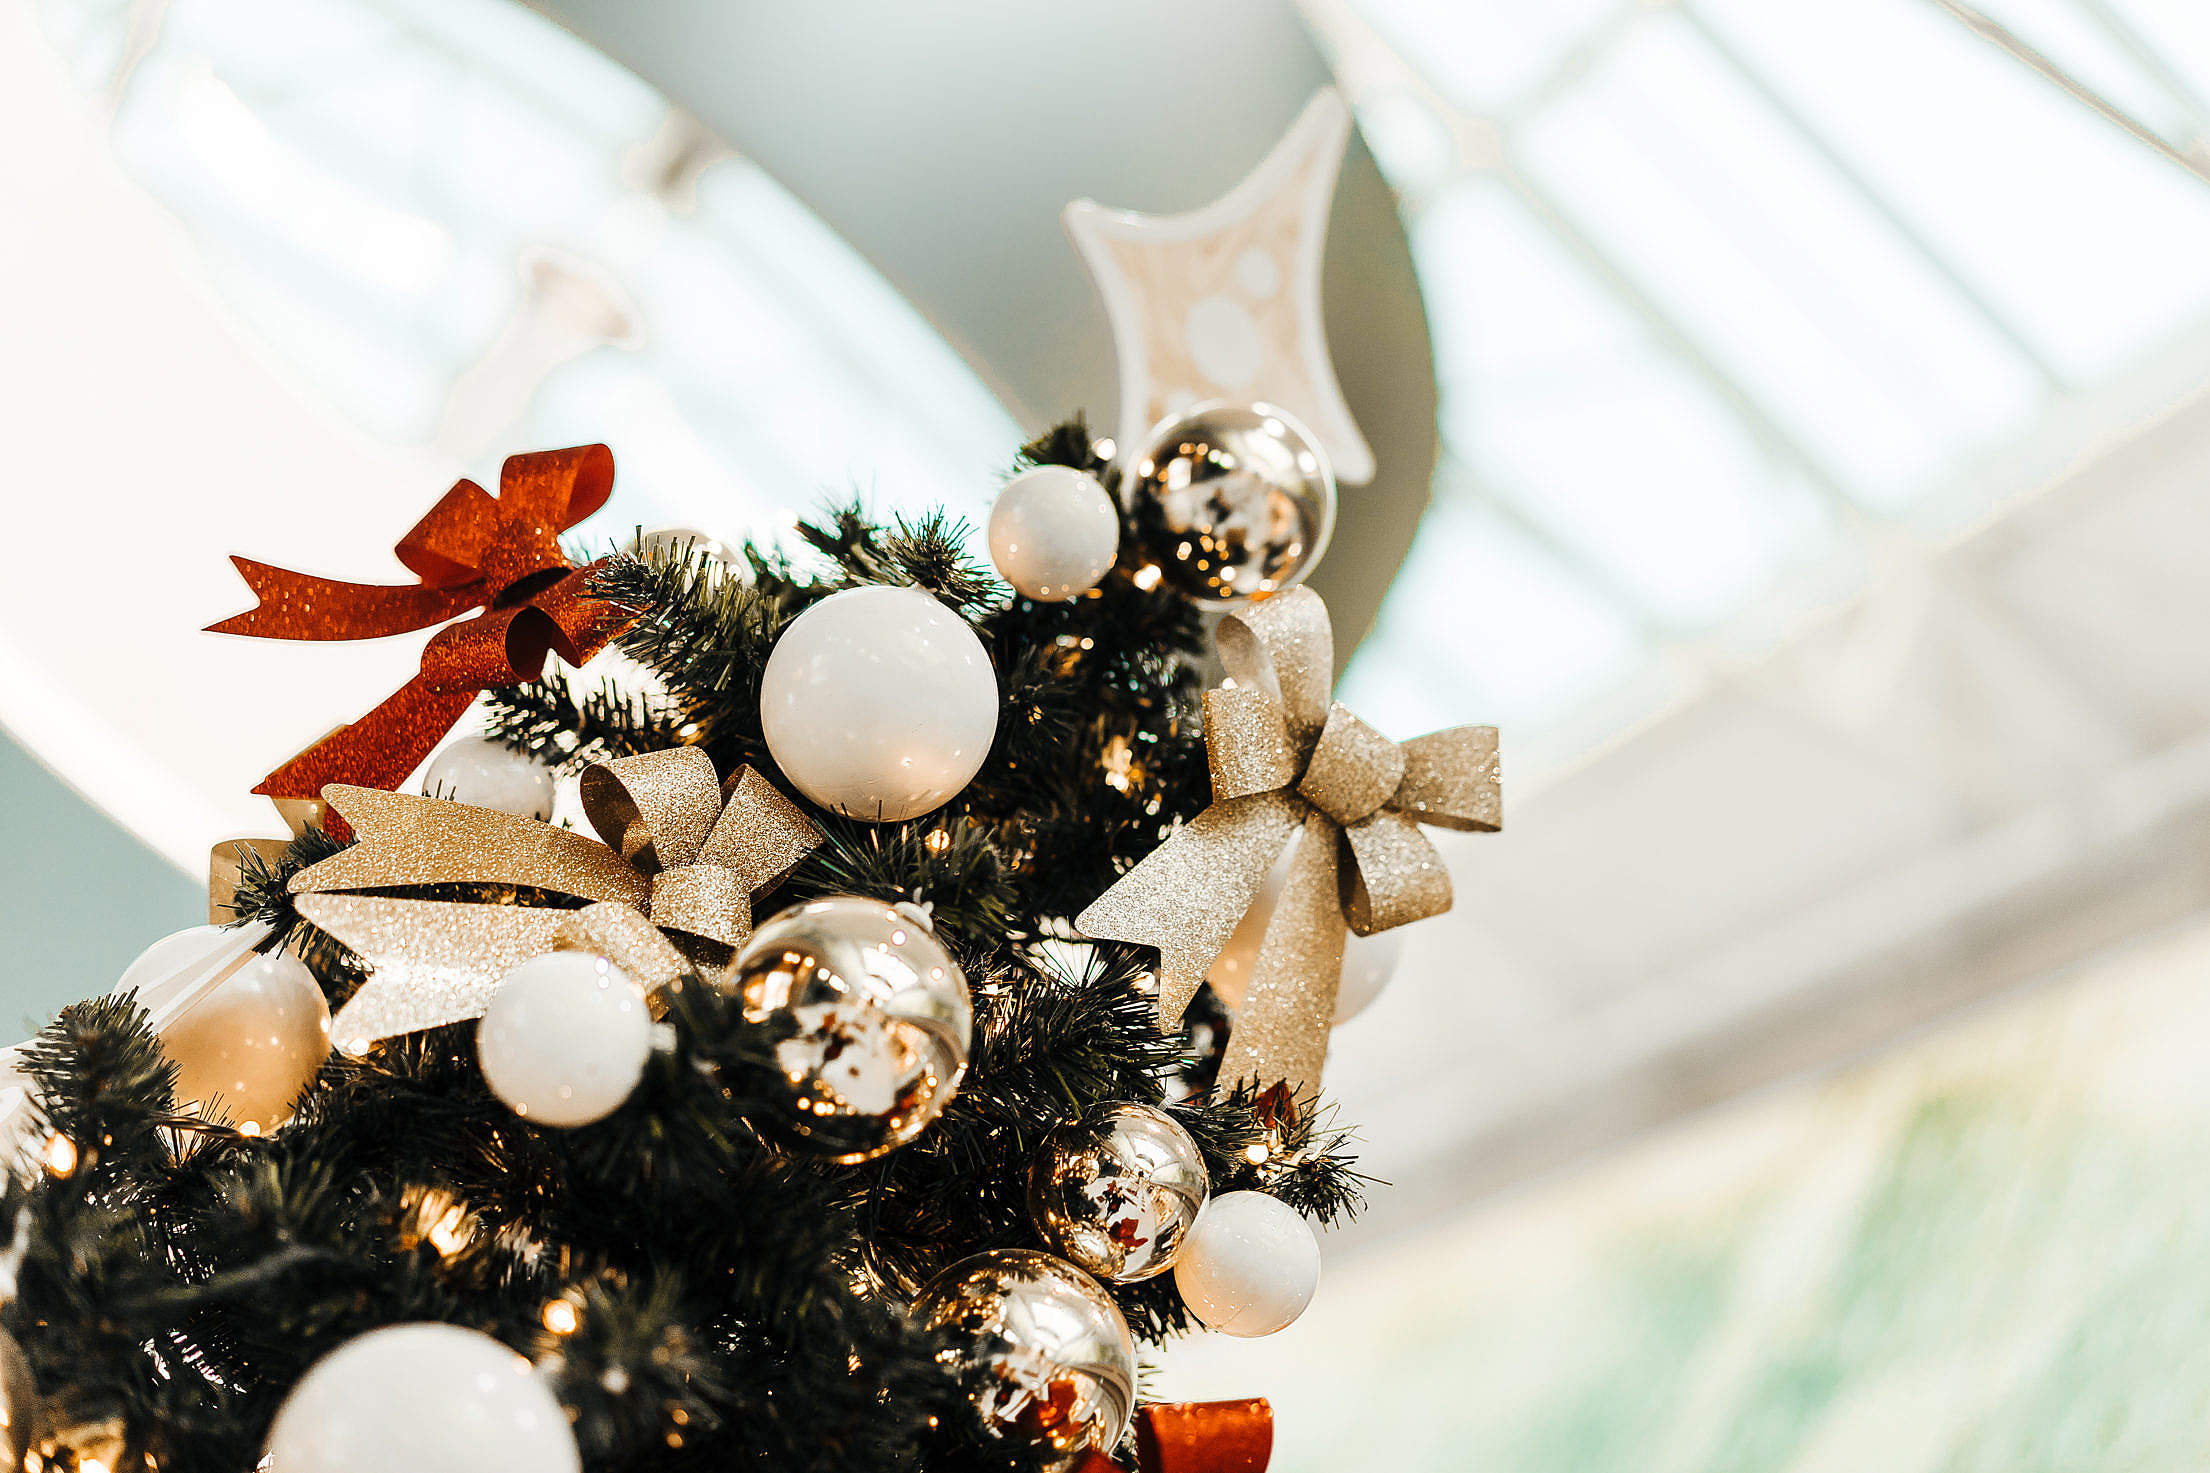 Download Top of the Christmas Tree Free Stock Photo